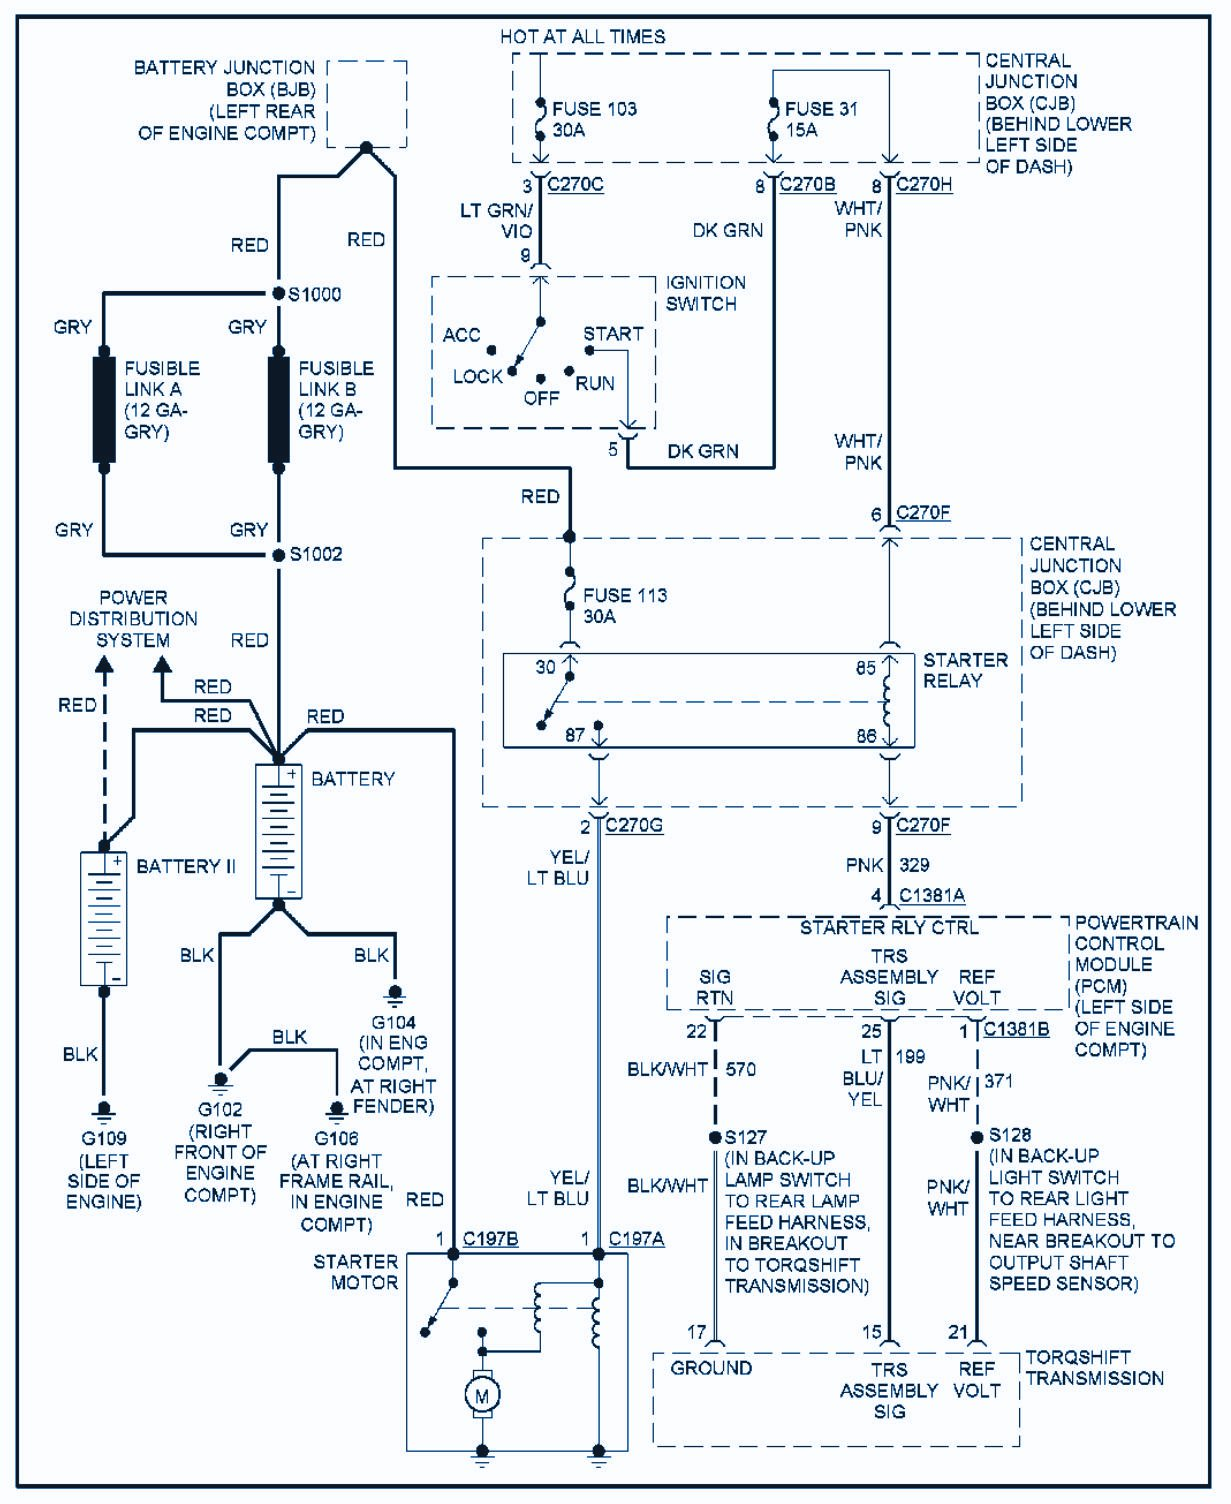 Alternator Wiring Diagram B+ D+ W from 3.bp.blogspot.com